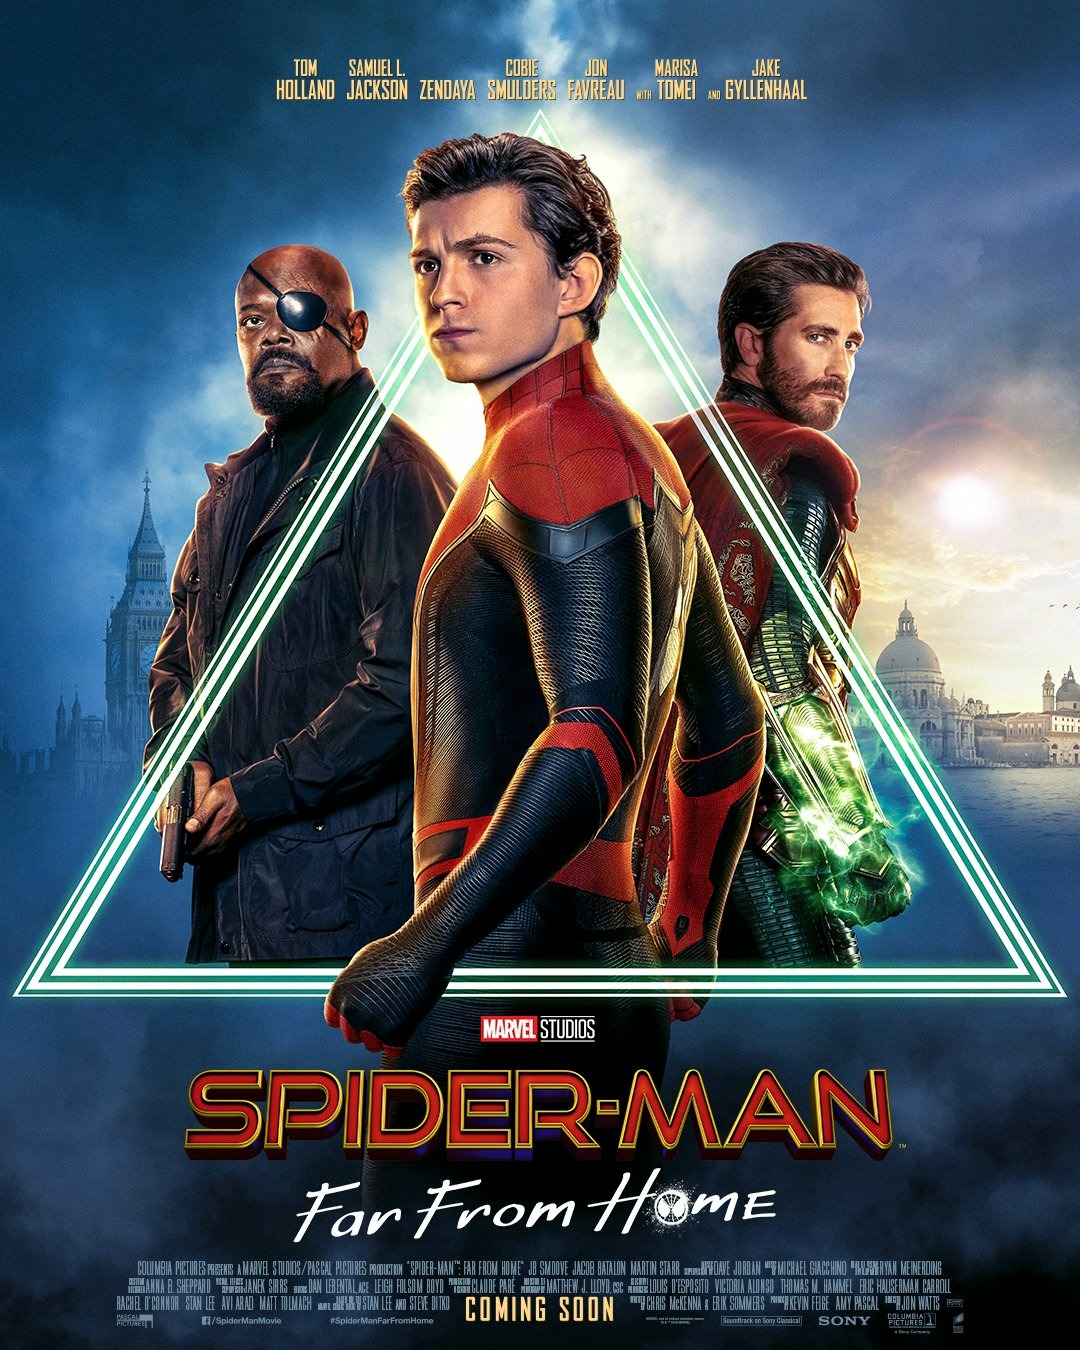 Spider-Man Far From Home poster.jpeg